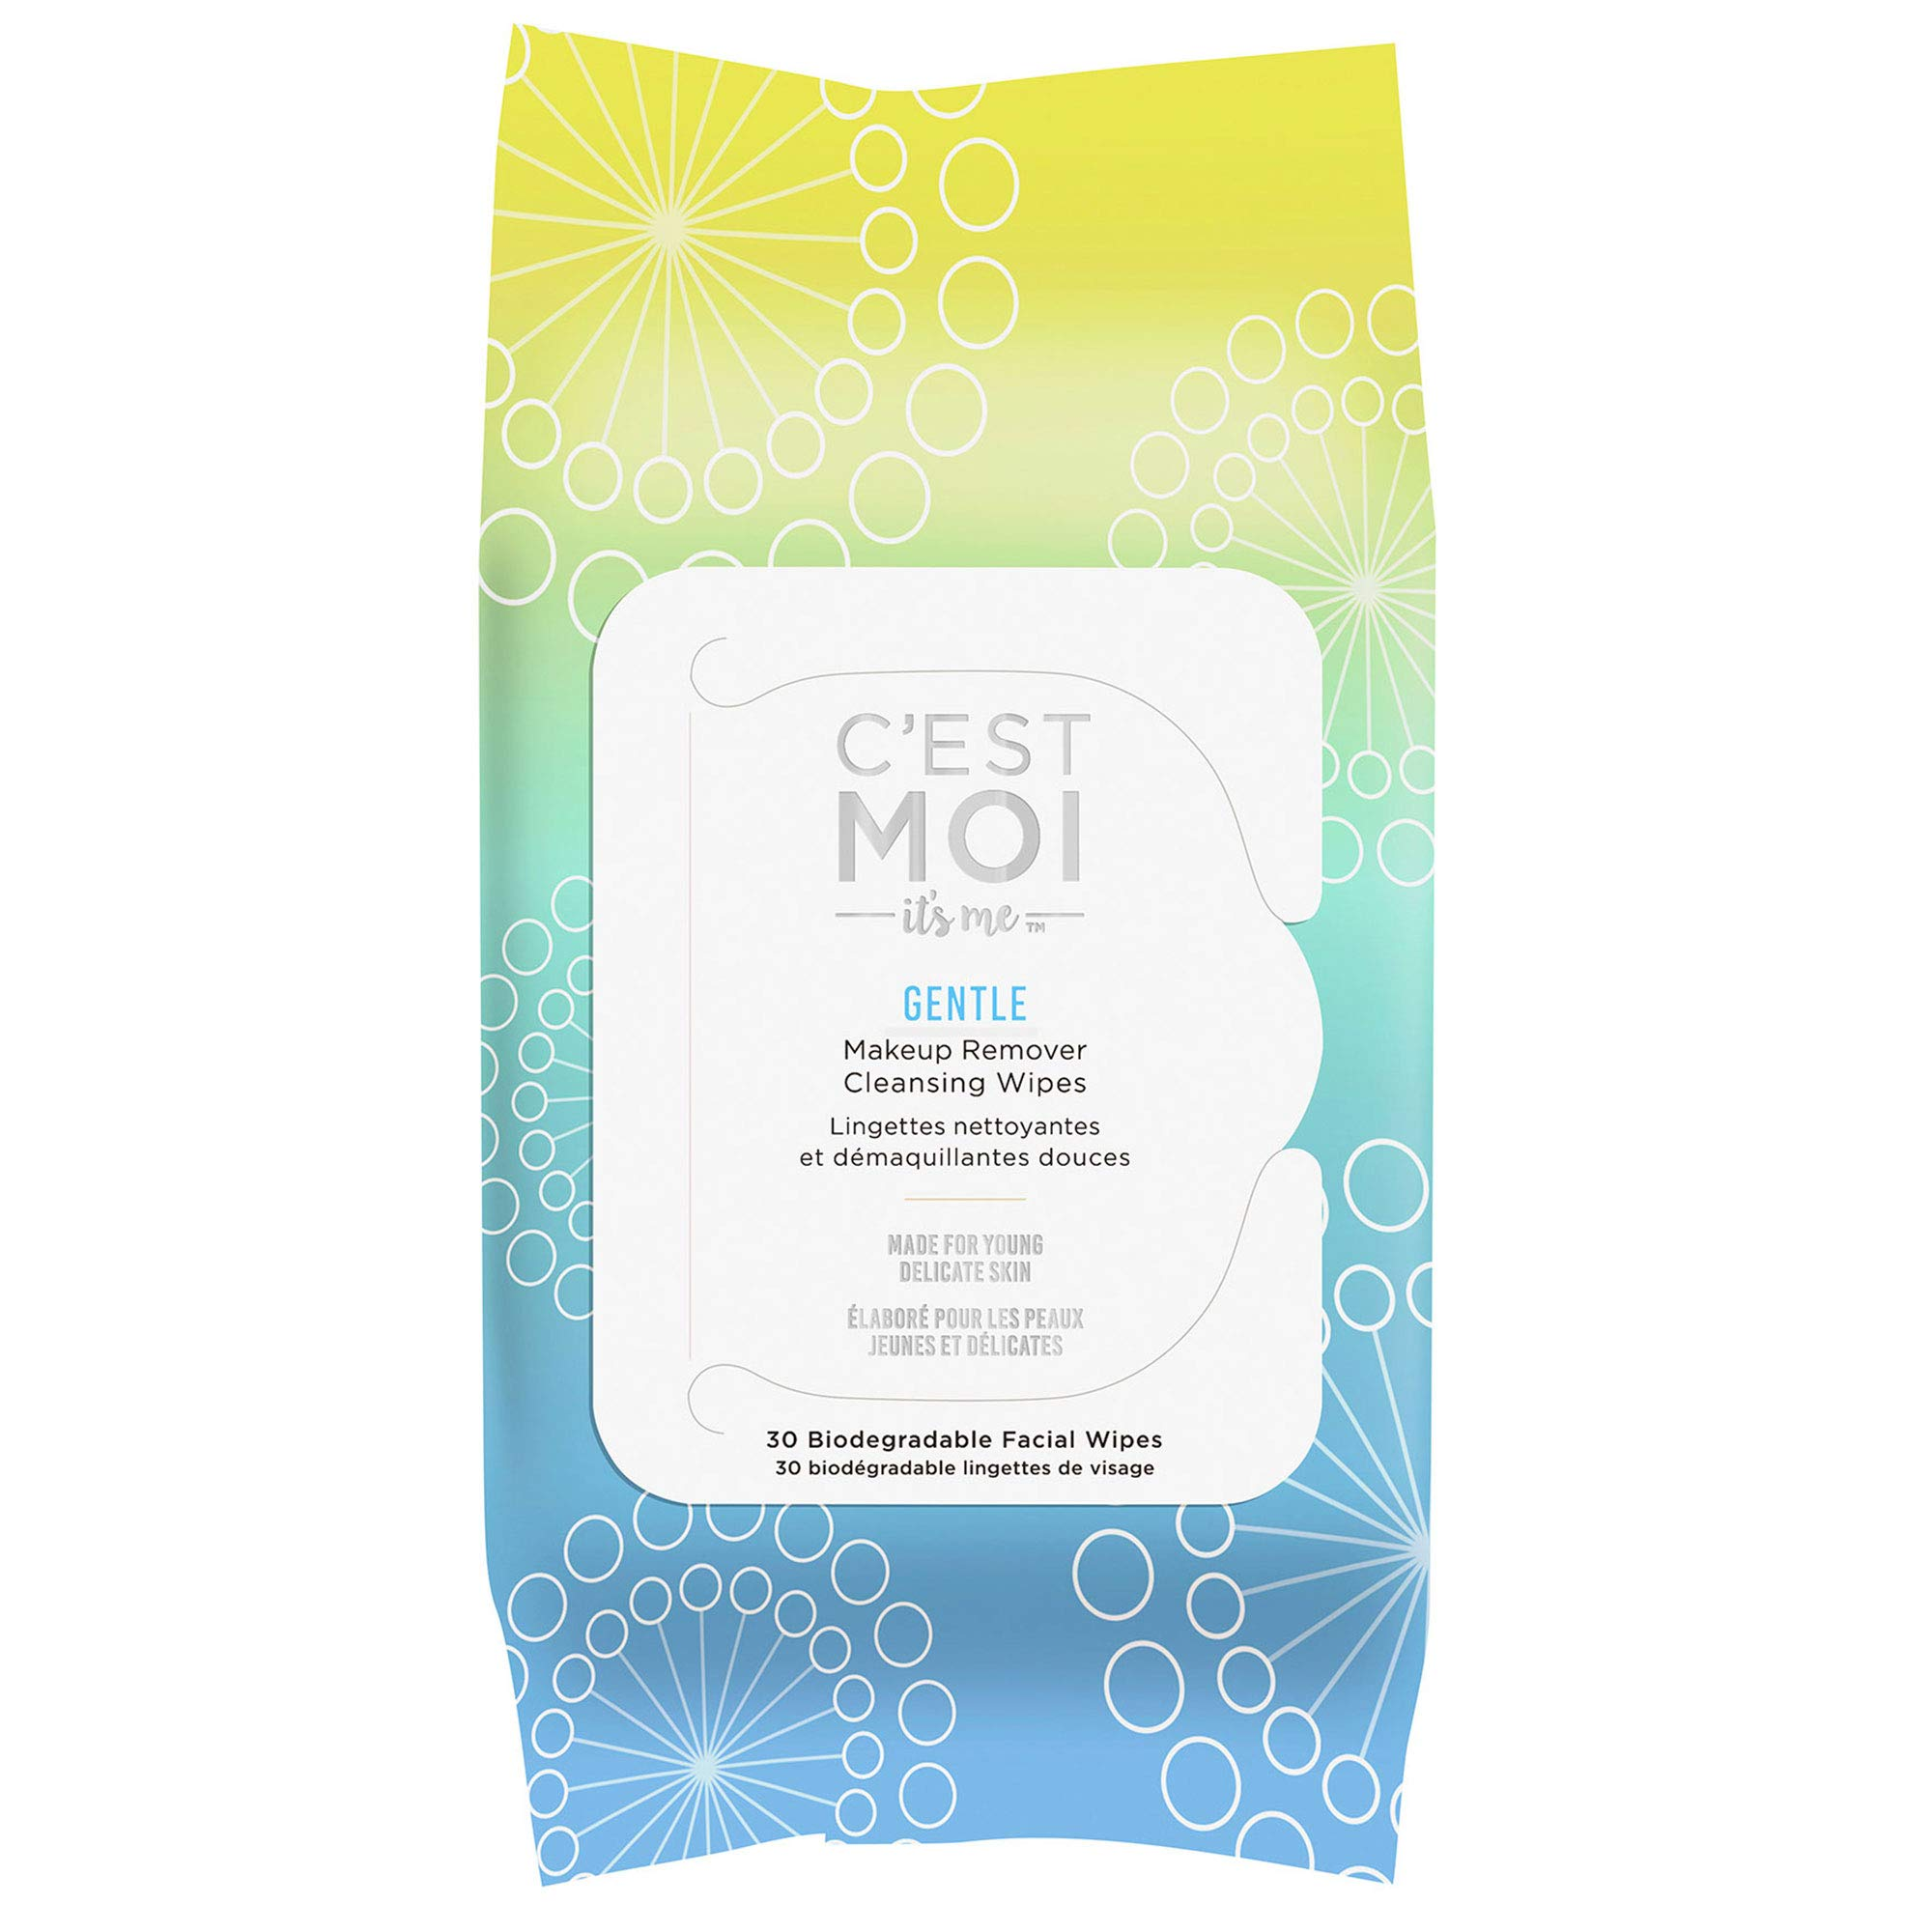 C'est Moi Gentle Makeup Remover Cleansing Wipes   Organic Aloe, Glycerin, Green Tea and Cucumber Extract Biodegradable Facial Wipes, Fragrance Free, Gentle Cleanser, 30 Biodegradable Wipes